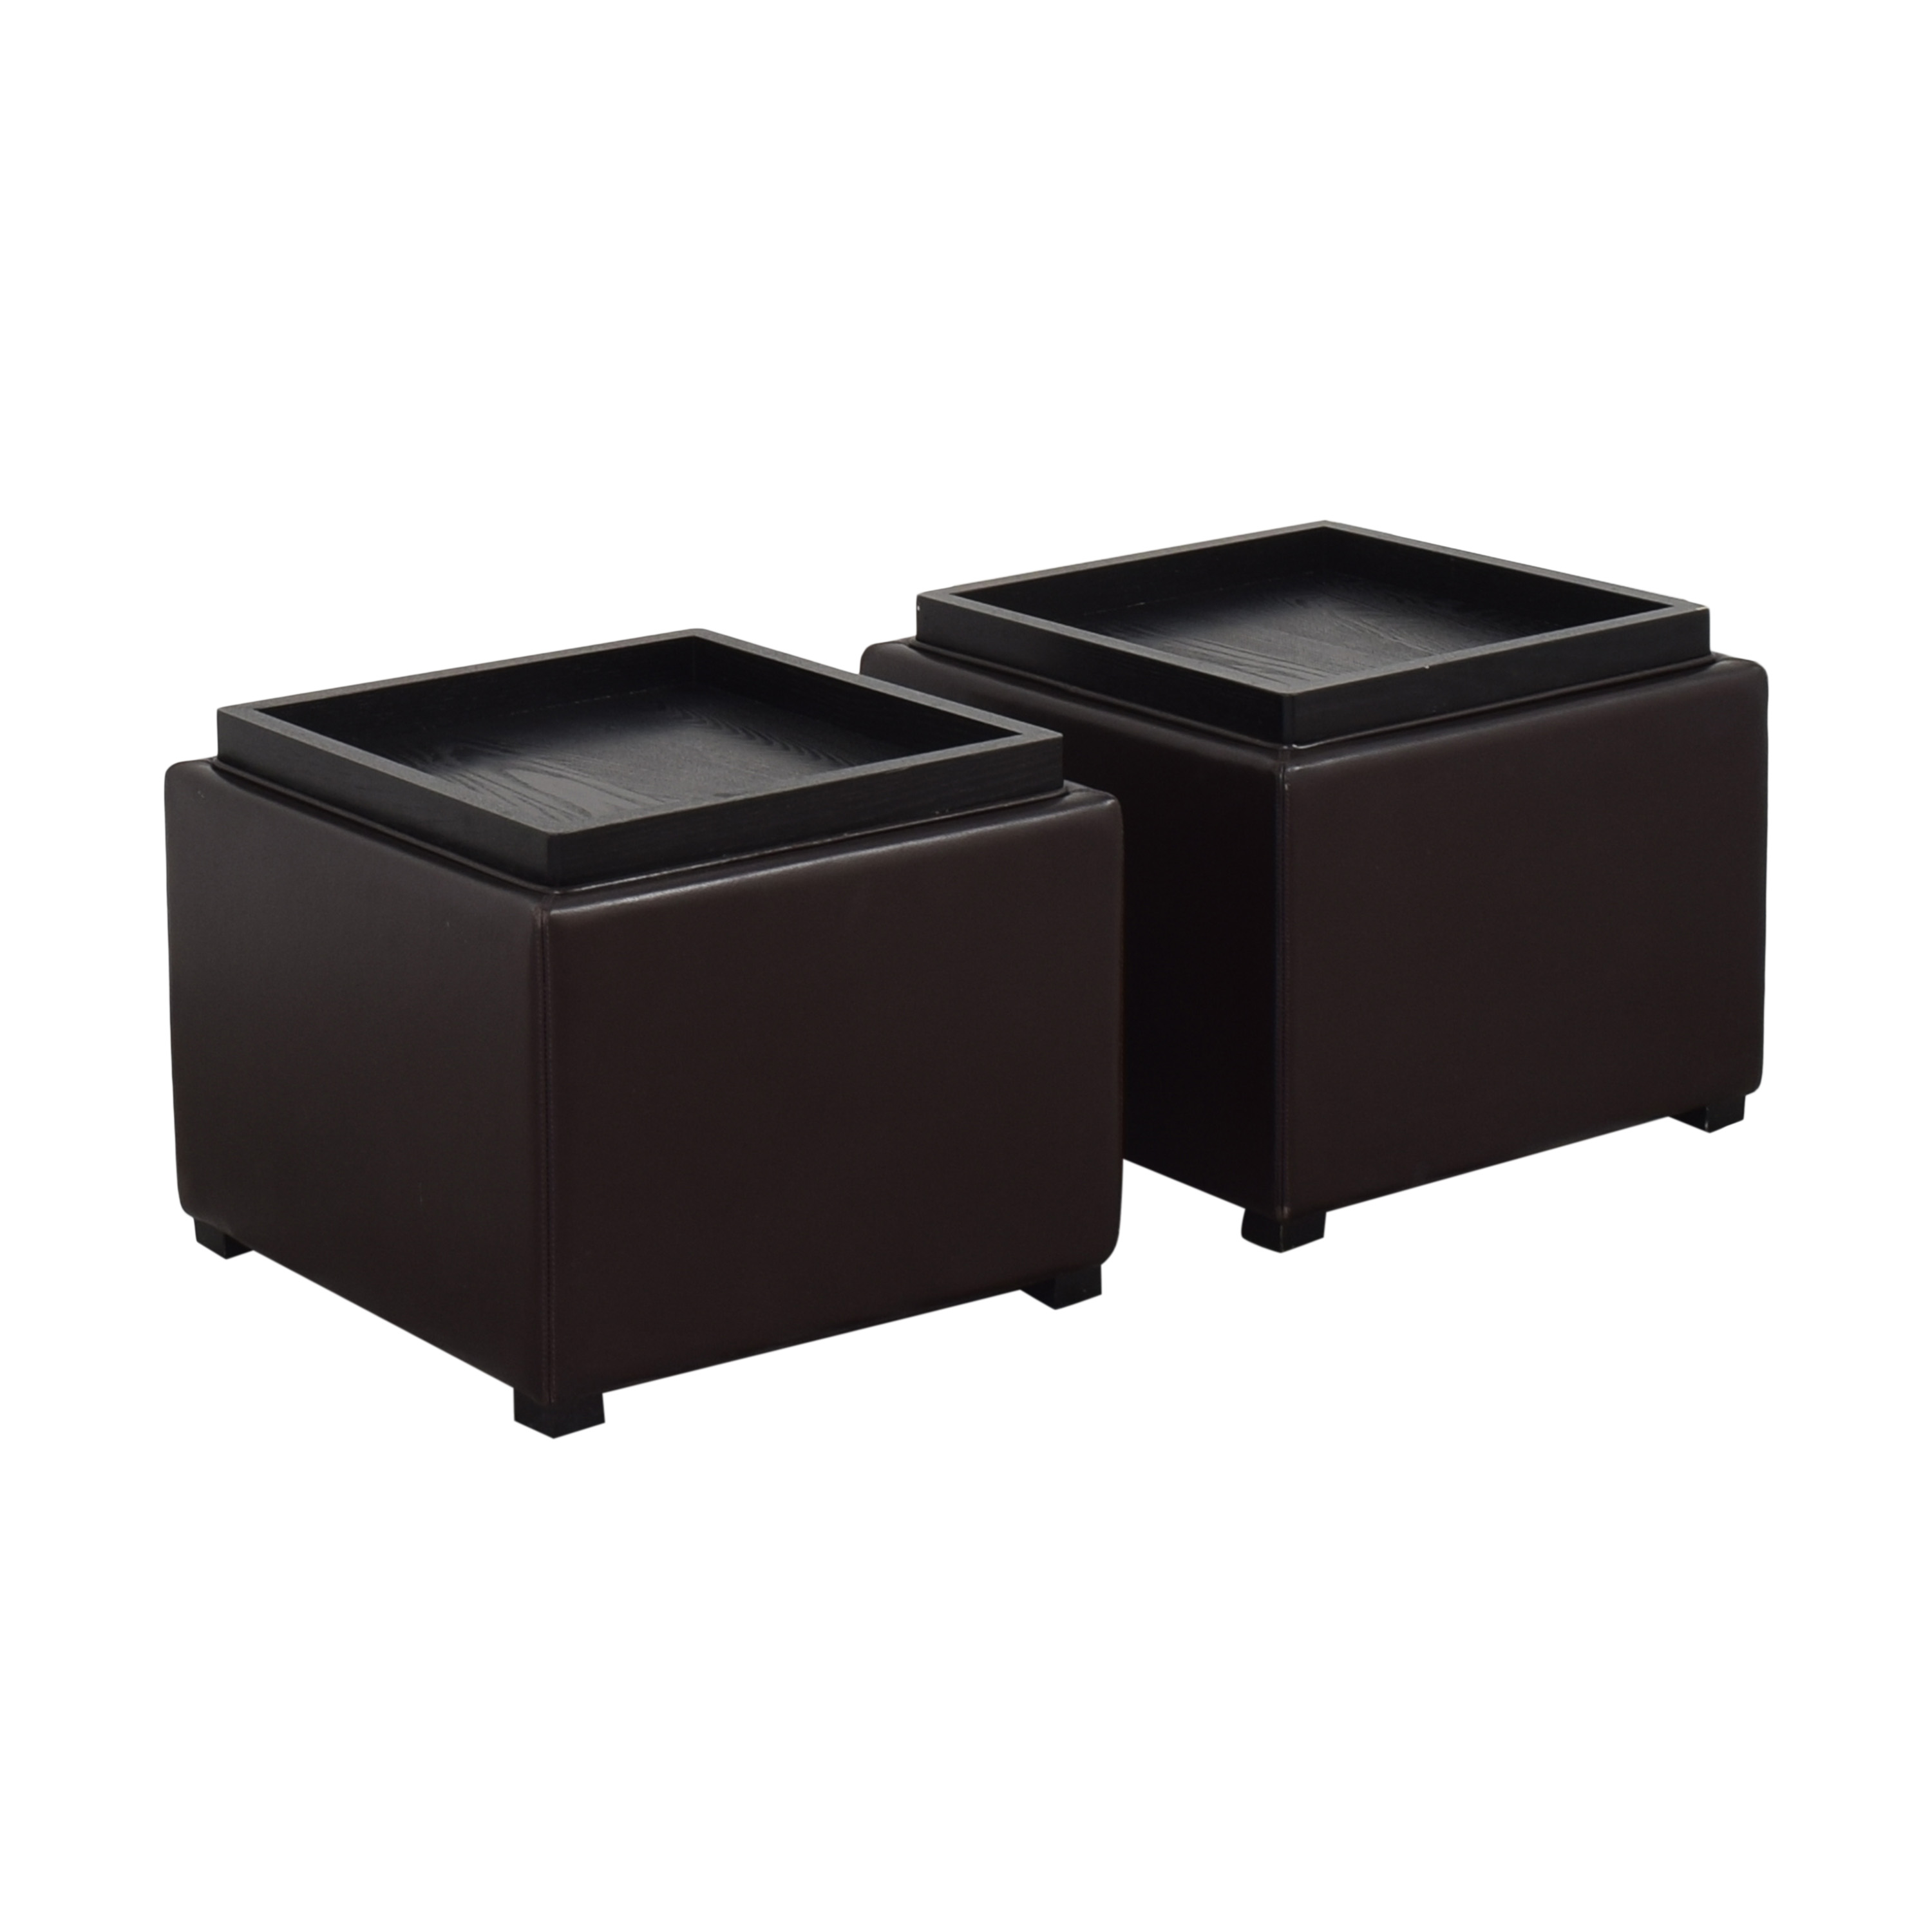 Crate & Barrel Crate & Barrel Stow Ottomans with Storage second hand